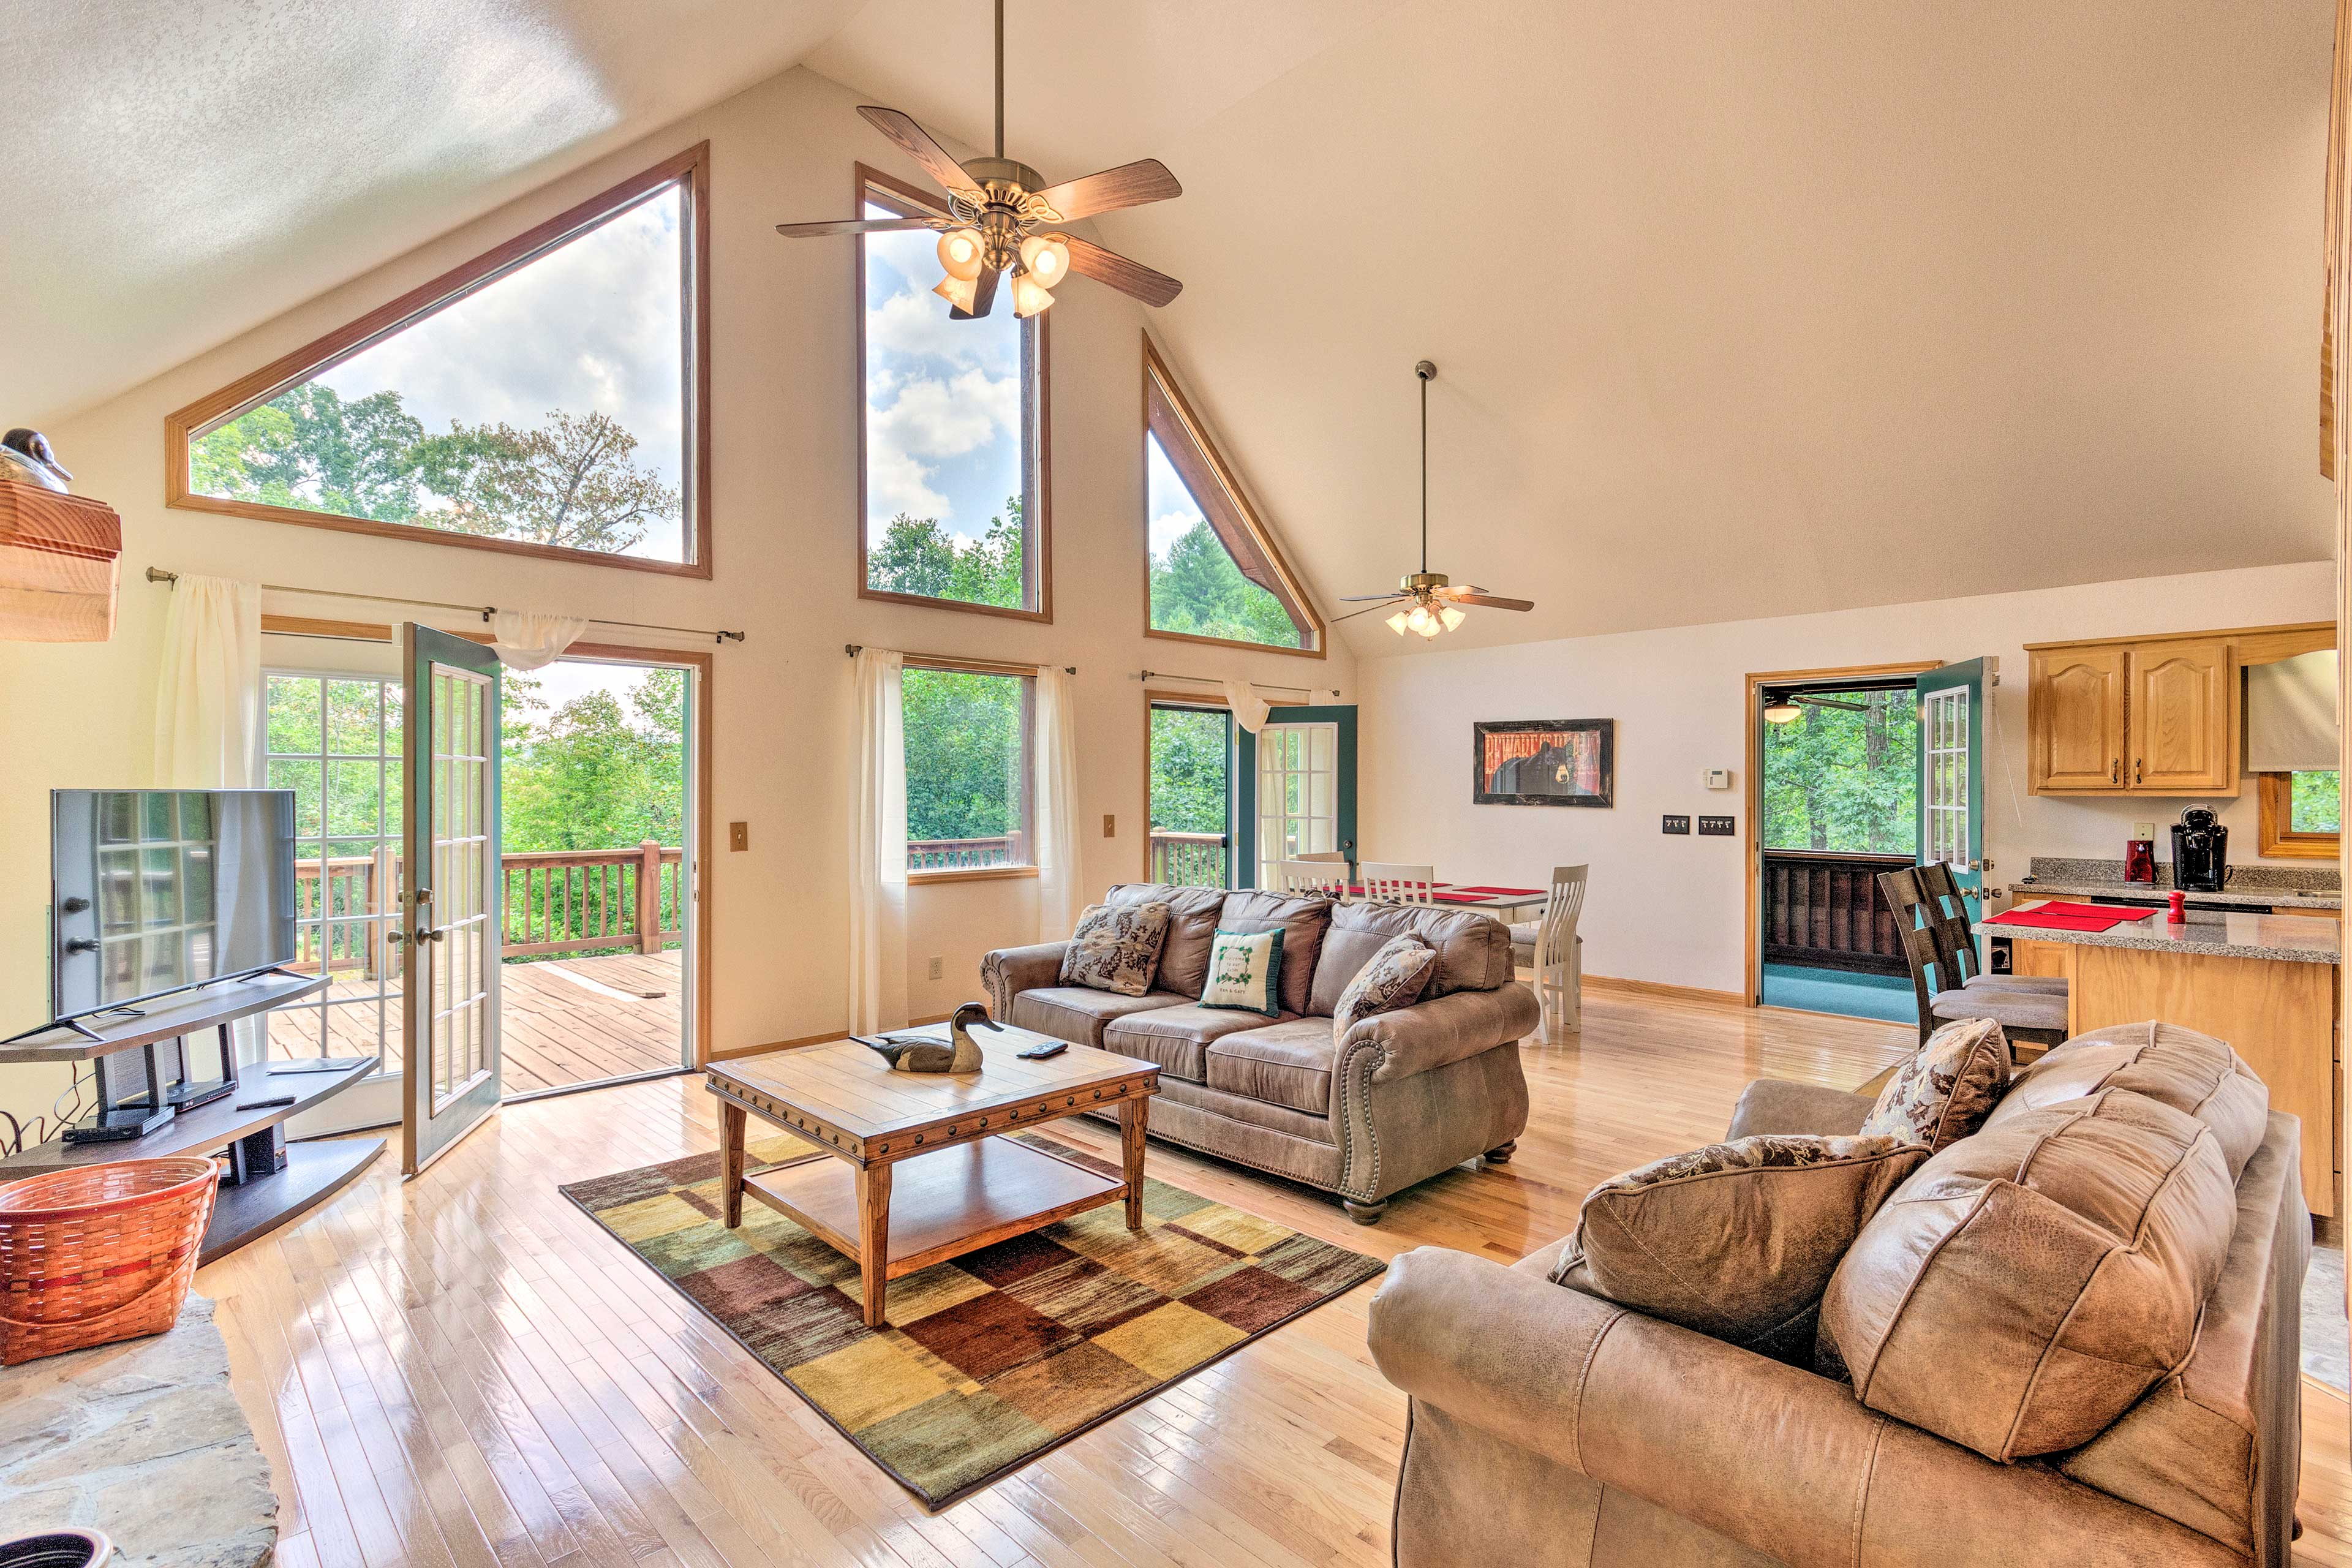 The interior and exterior of this spacious home offer stunning forest views!